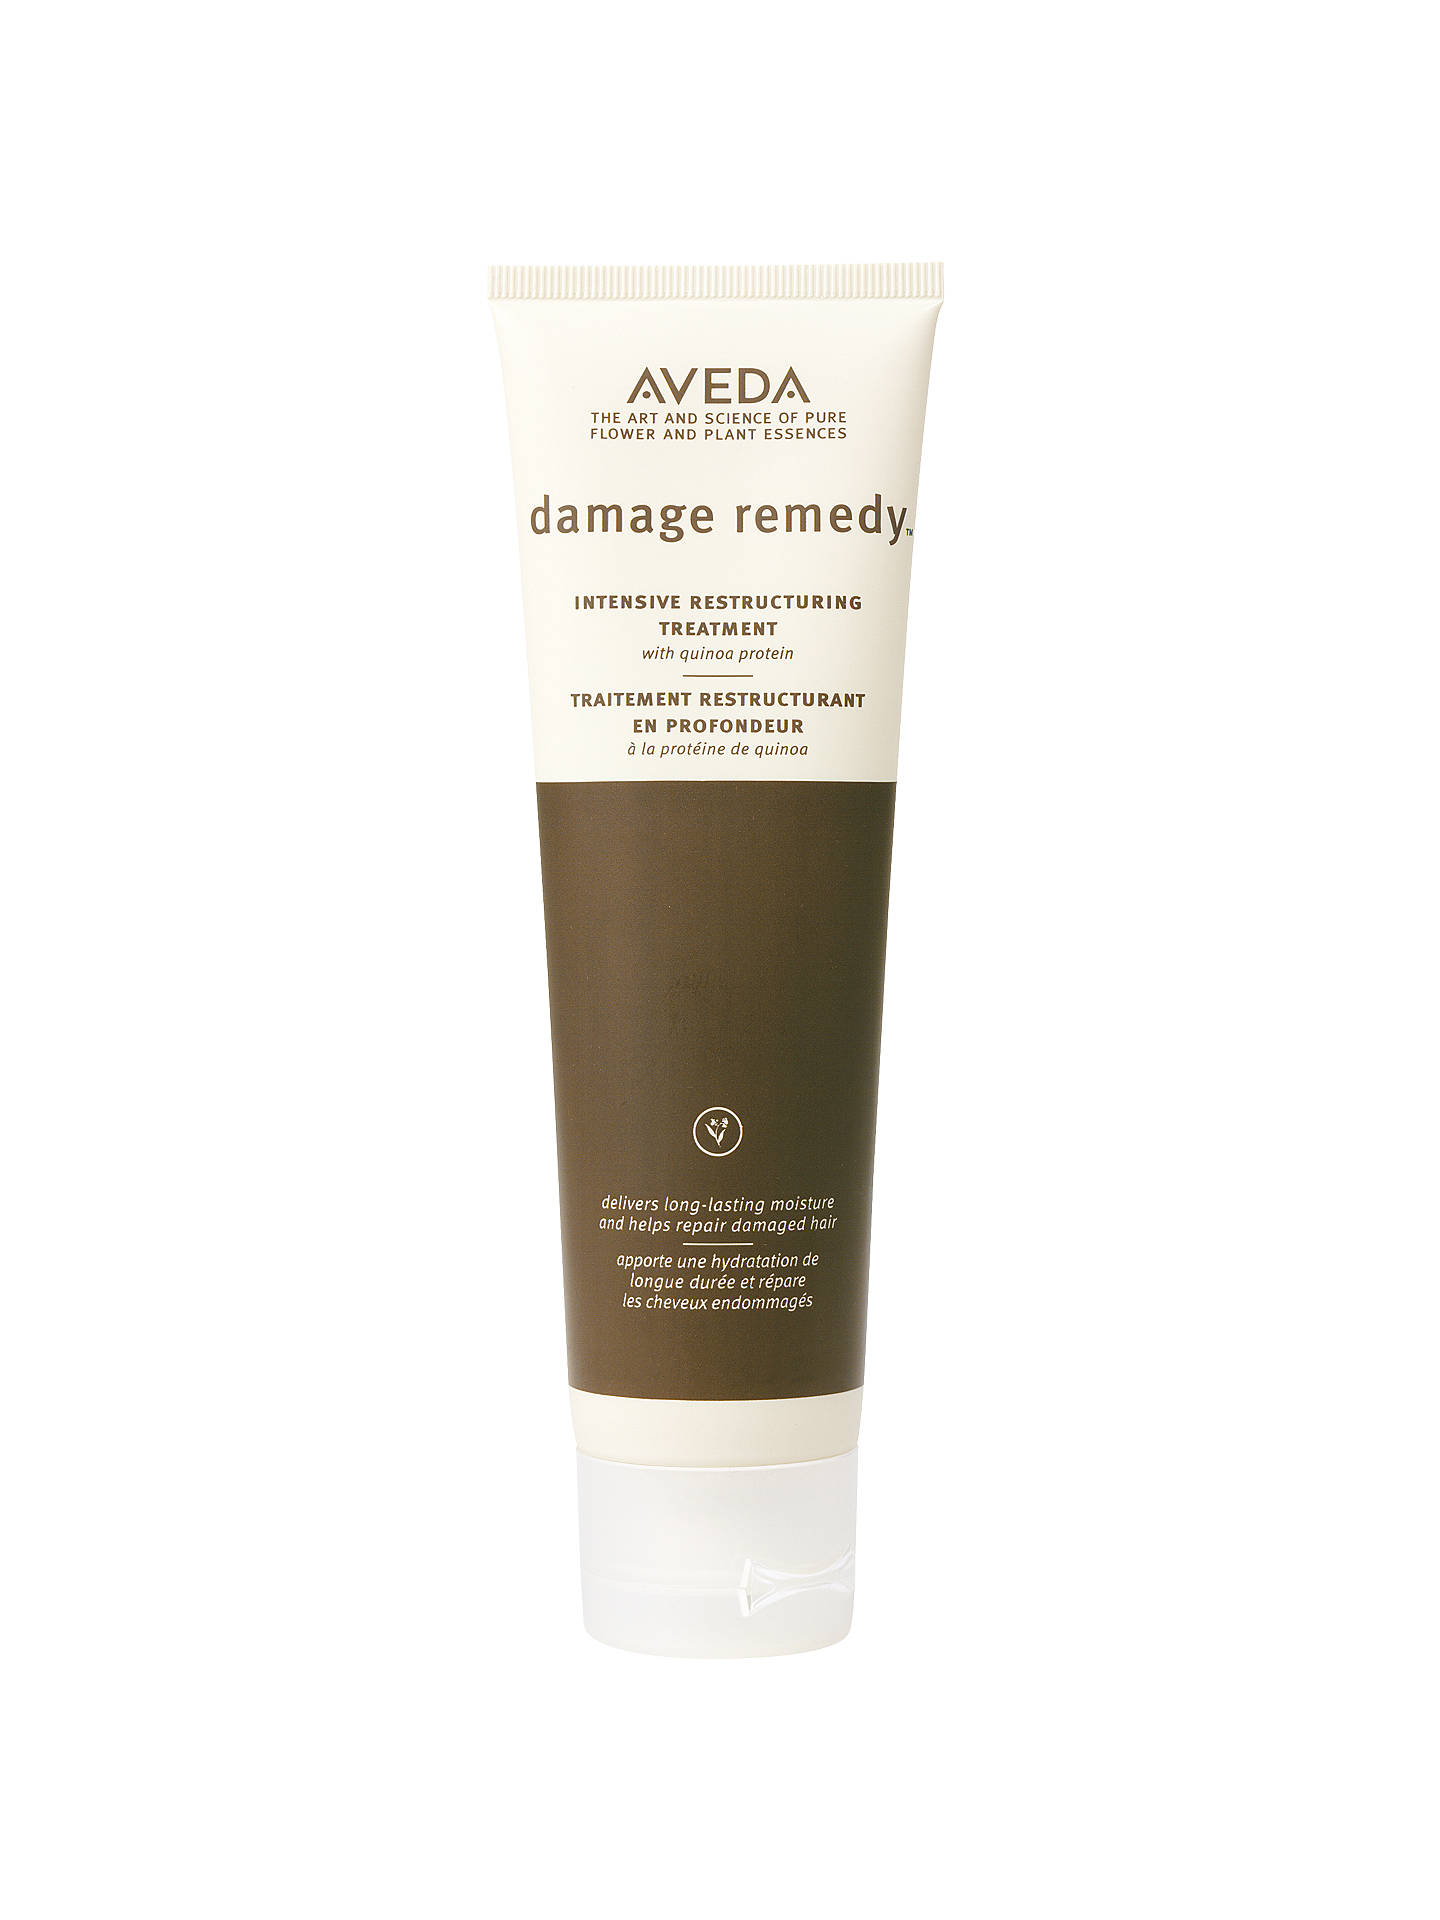 Buy Aveda Damage Remedy™ Intensive Restructuring Treatment, 500ml Online at johnlewis.com